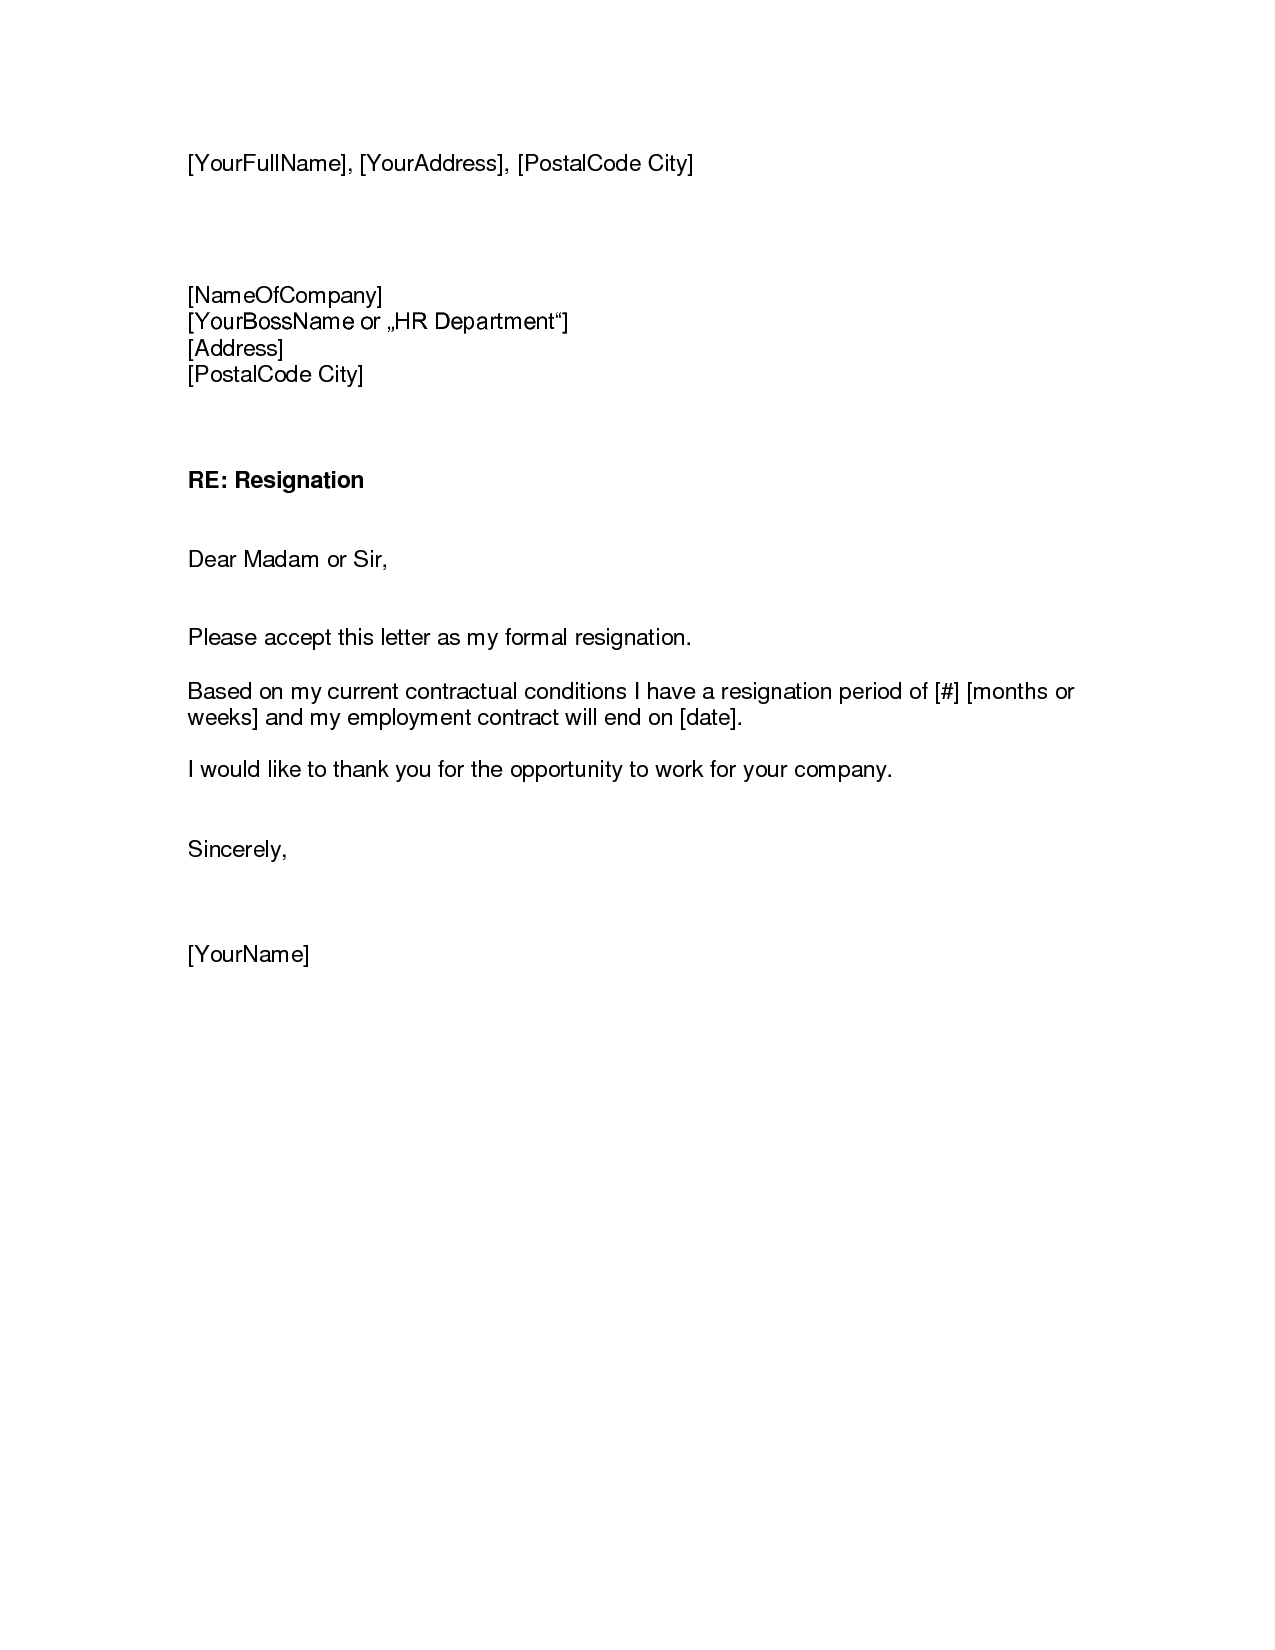 Lovely Sample Resignation Letter Template 2 Resignation Letter Format: Full Name Free  Resignation Letter . Ideas Letter Of Resignation Template Word Free